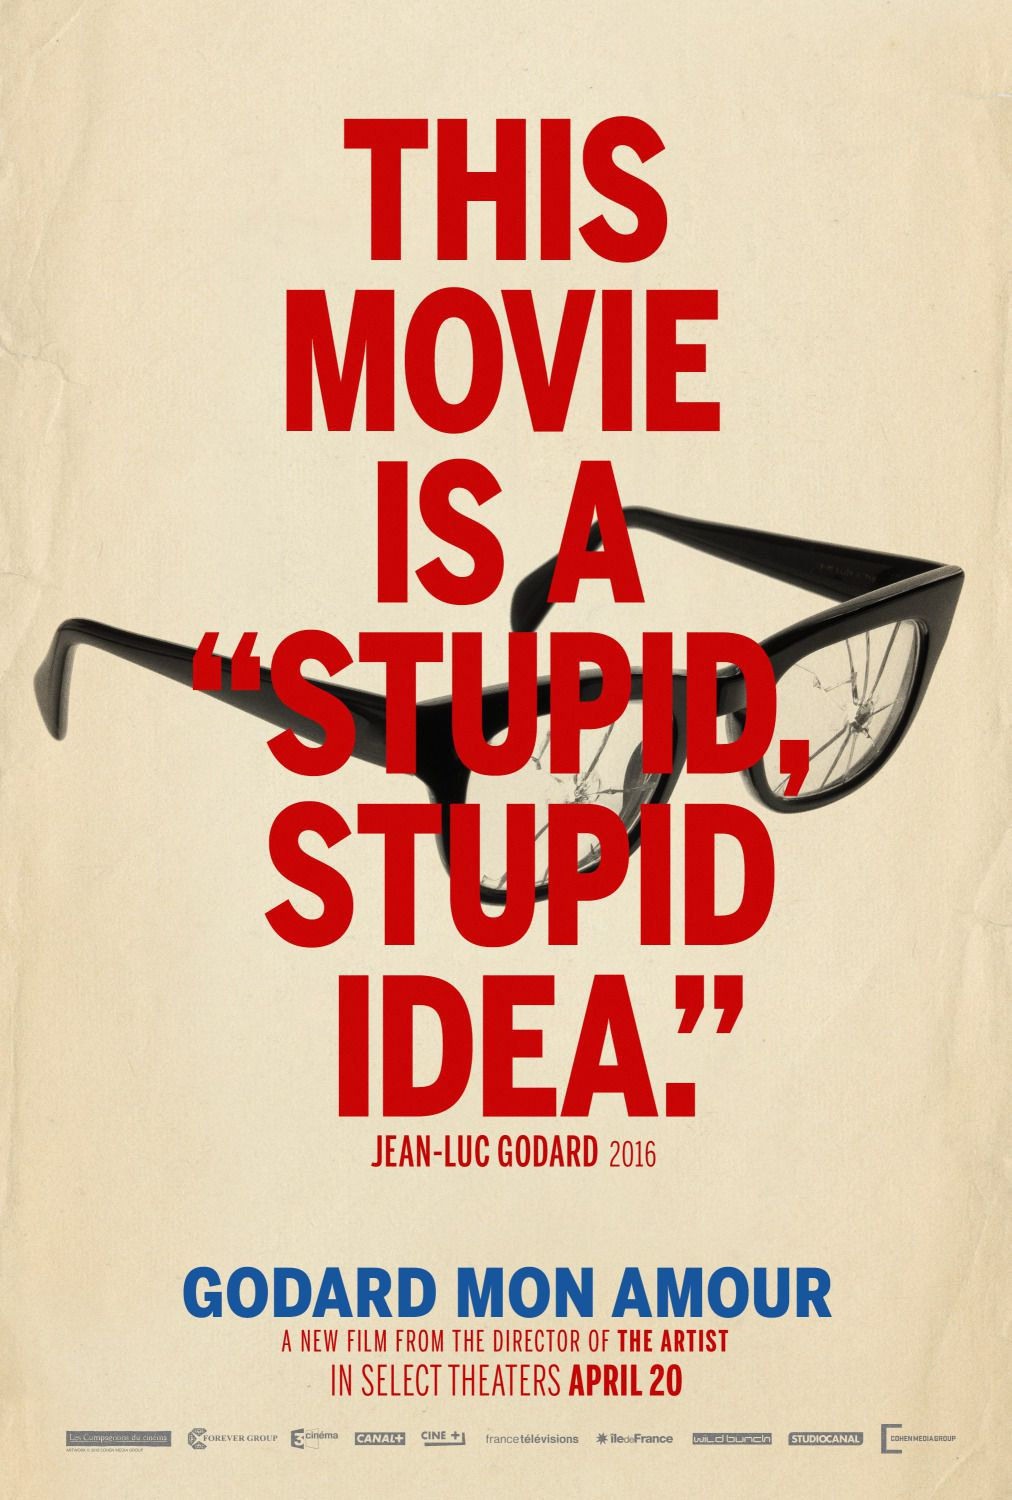 Godard Mon Amour - this movie is a Stupid, Stupid Idea - film poster